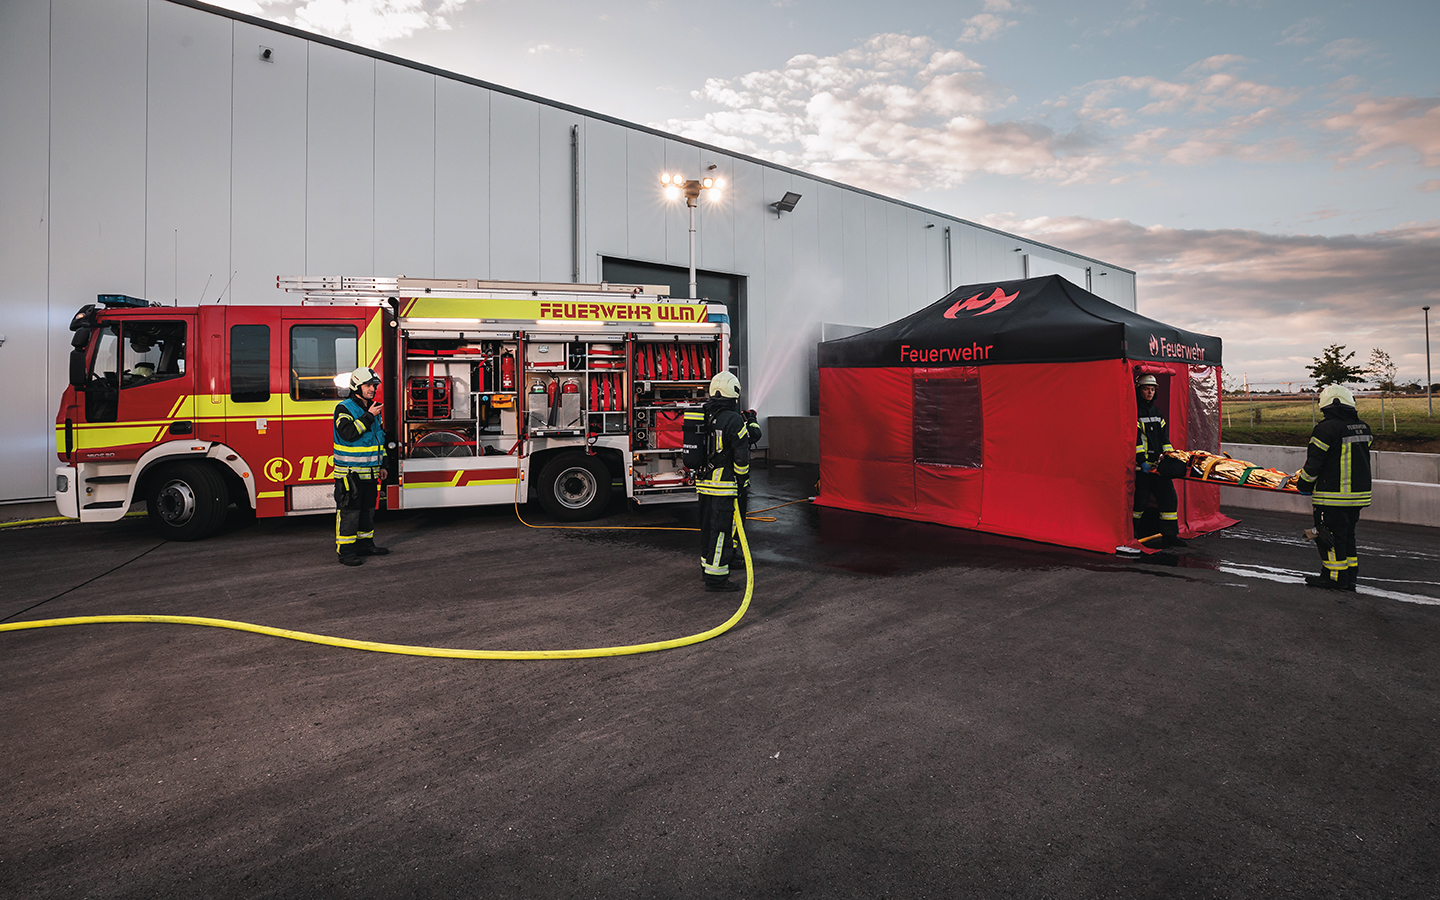 Two firefighters bring an injured person into the black and red firefighting canopy tent, which is set up right next to the fire truck. While another firefighter sprays the building hall with water, the firefighter with the radio directs the operation.